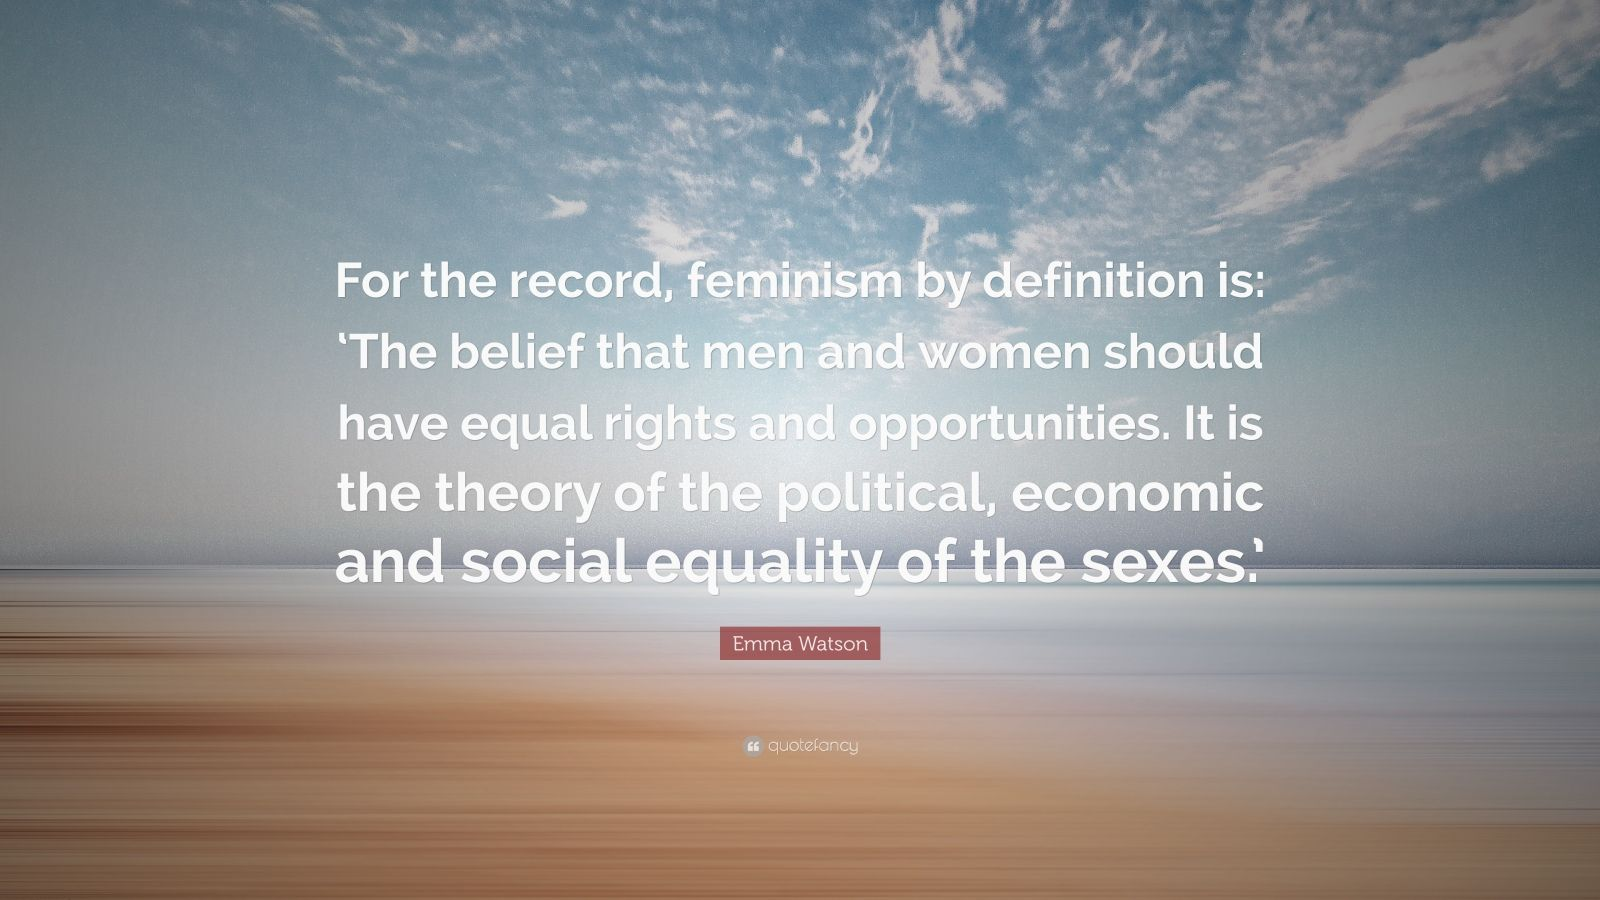 """Emma Watson Quote: """"For the record, feminism by definition is: 'The belief that men and women should have equal rights and opportunities. It is the theory of the political, economic and social equality of the sexes.'"""""""